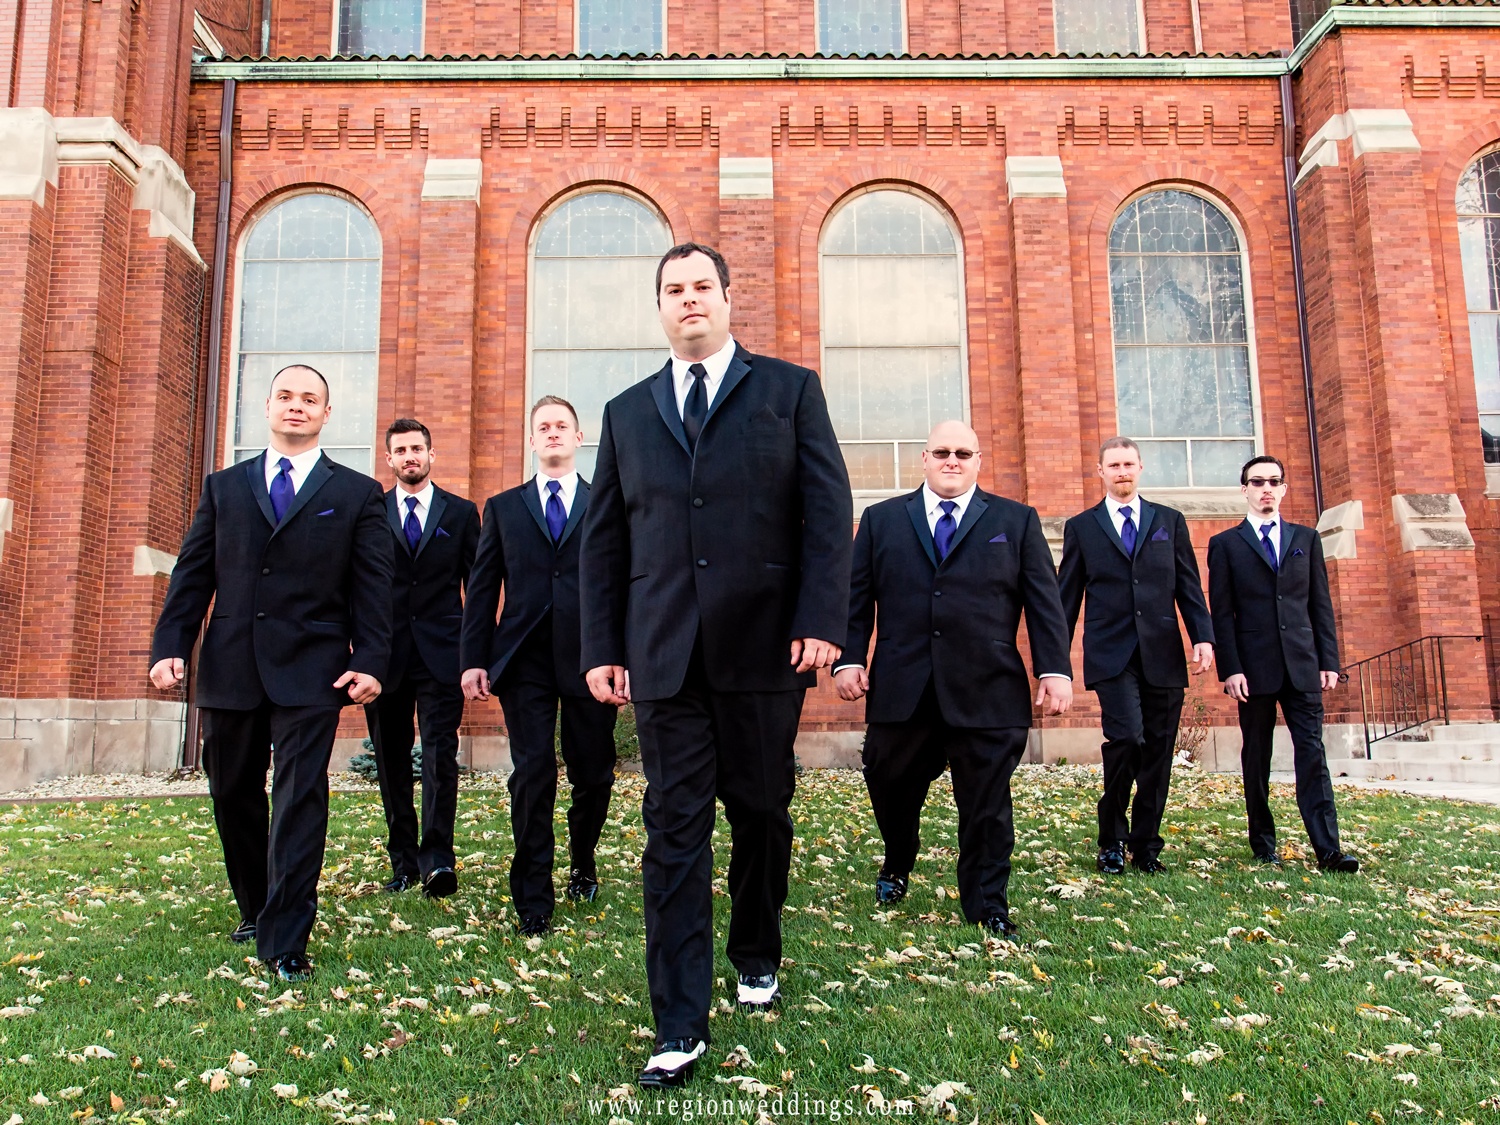 The groomsmen take a walk in the autumn leaves outside Saint Andrew's Church.